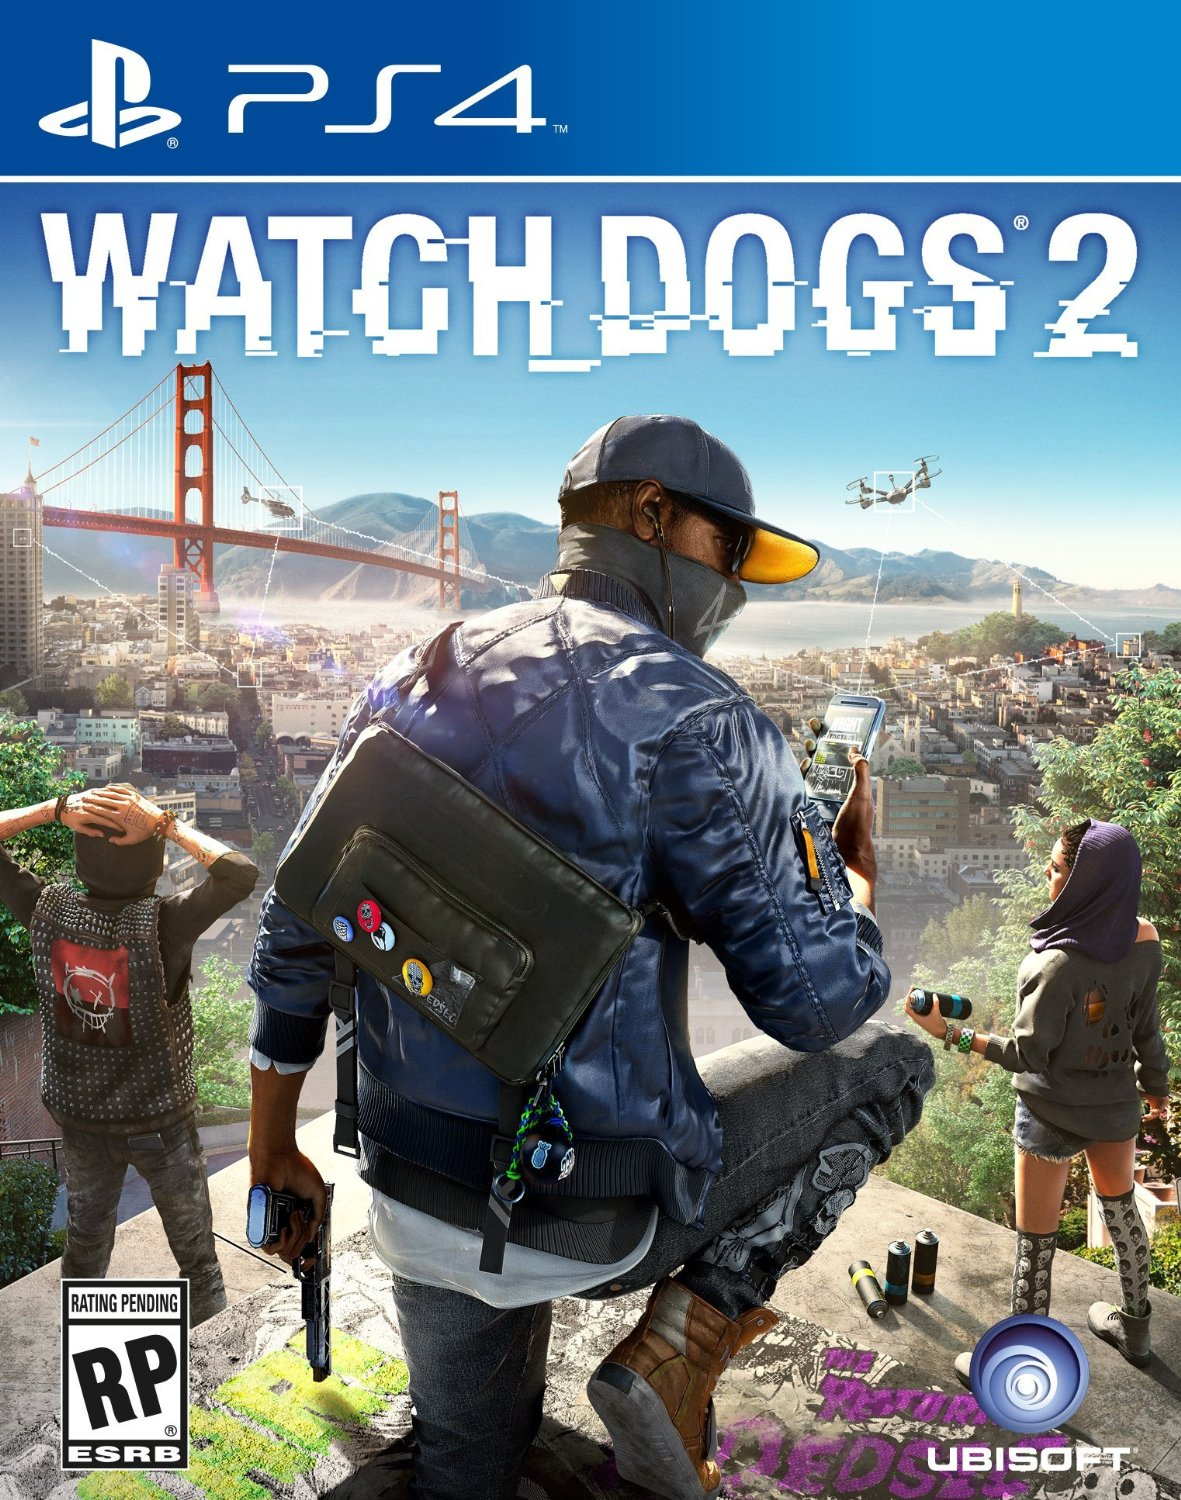 PS4 Watch Dogs 2 (PlayStation 4)